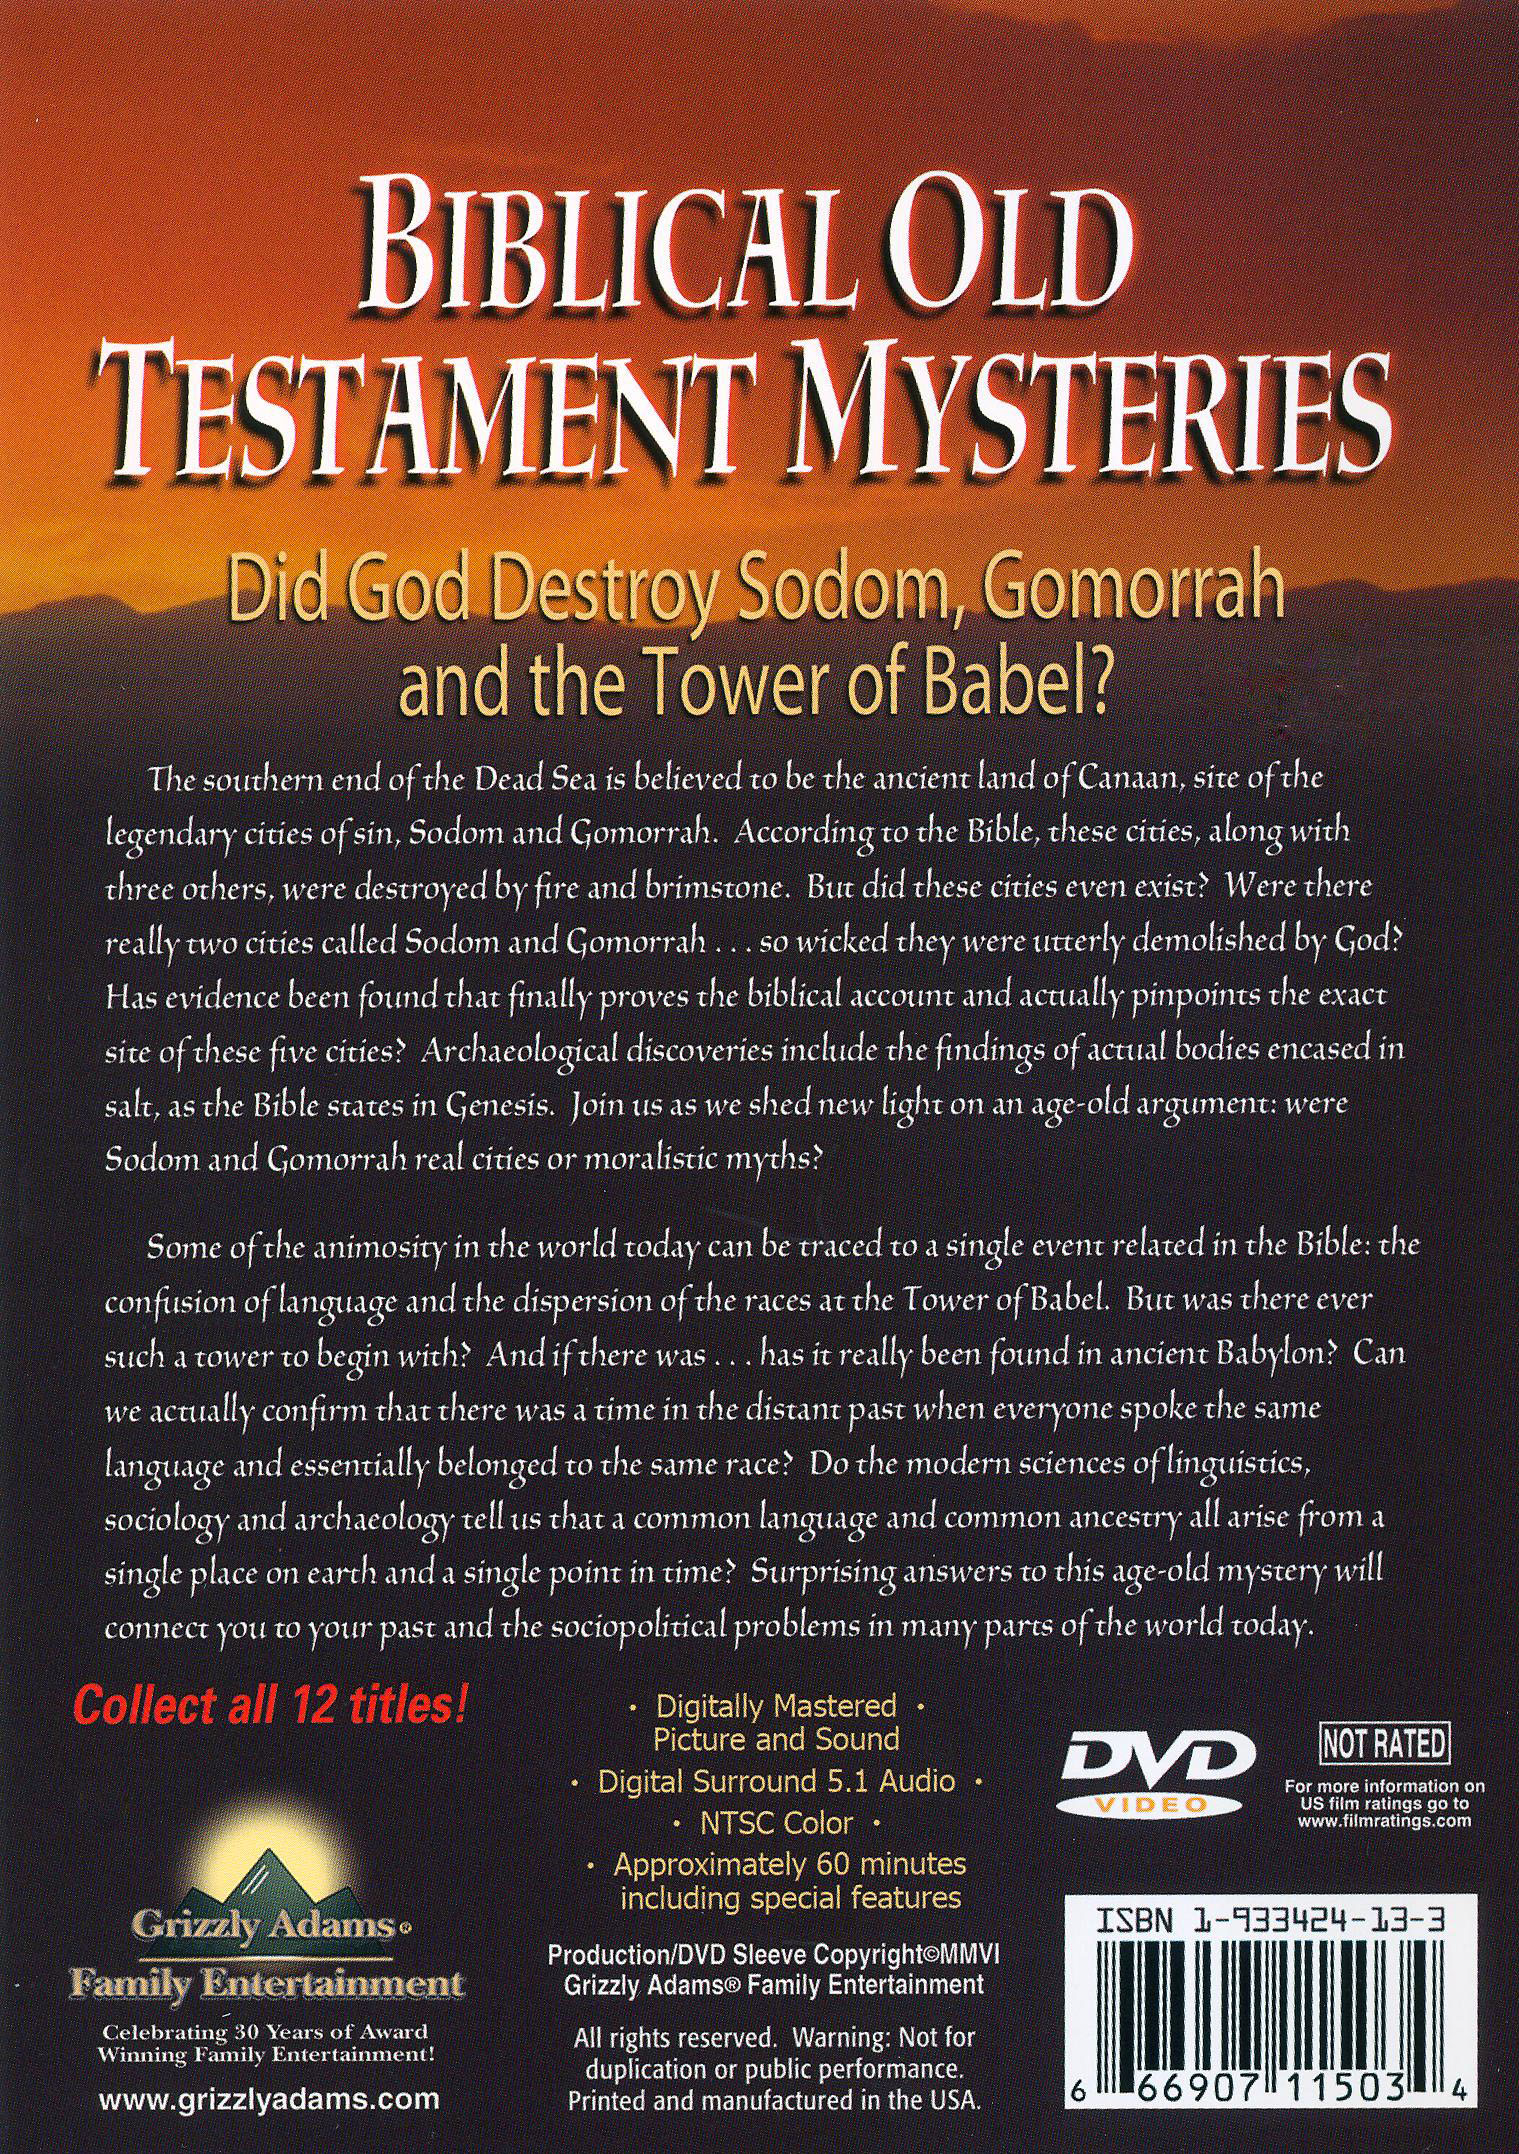 Biblical Collector's Series: Biblical Old Testament Mysteries